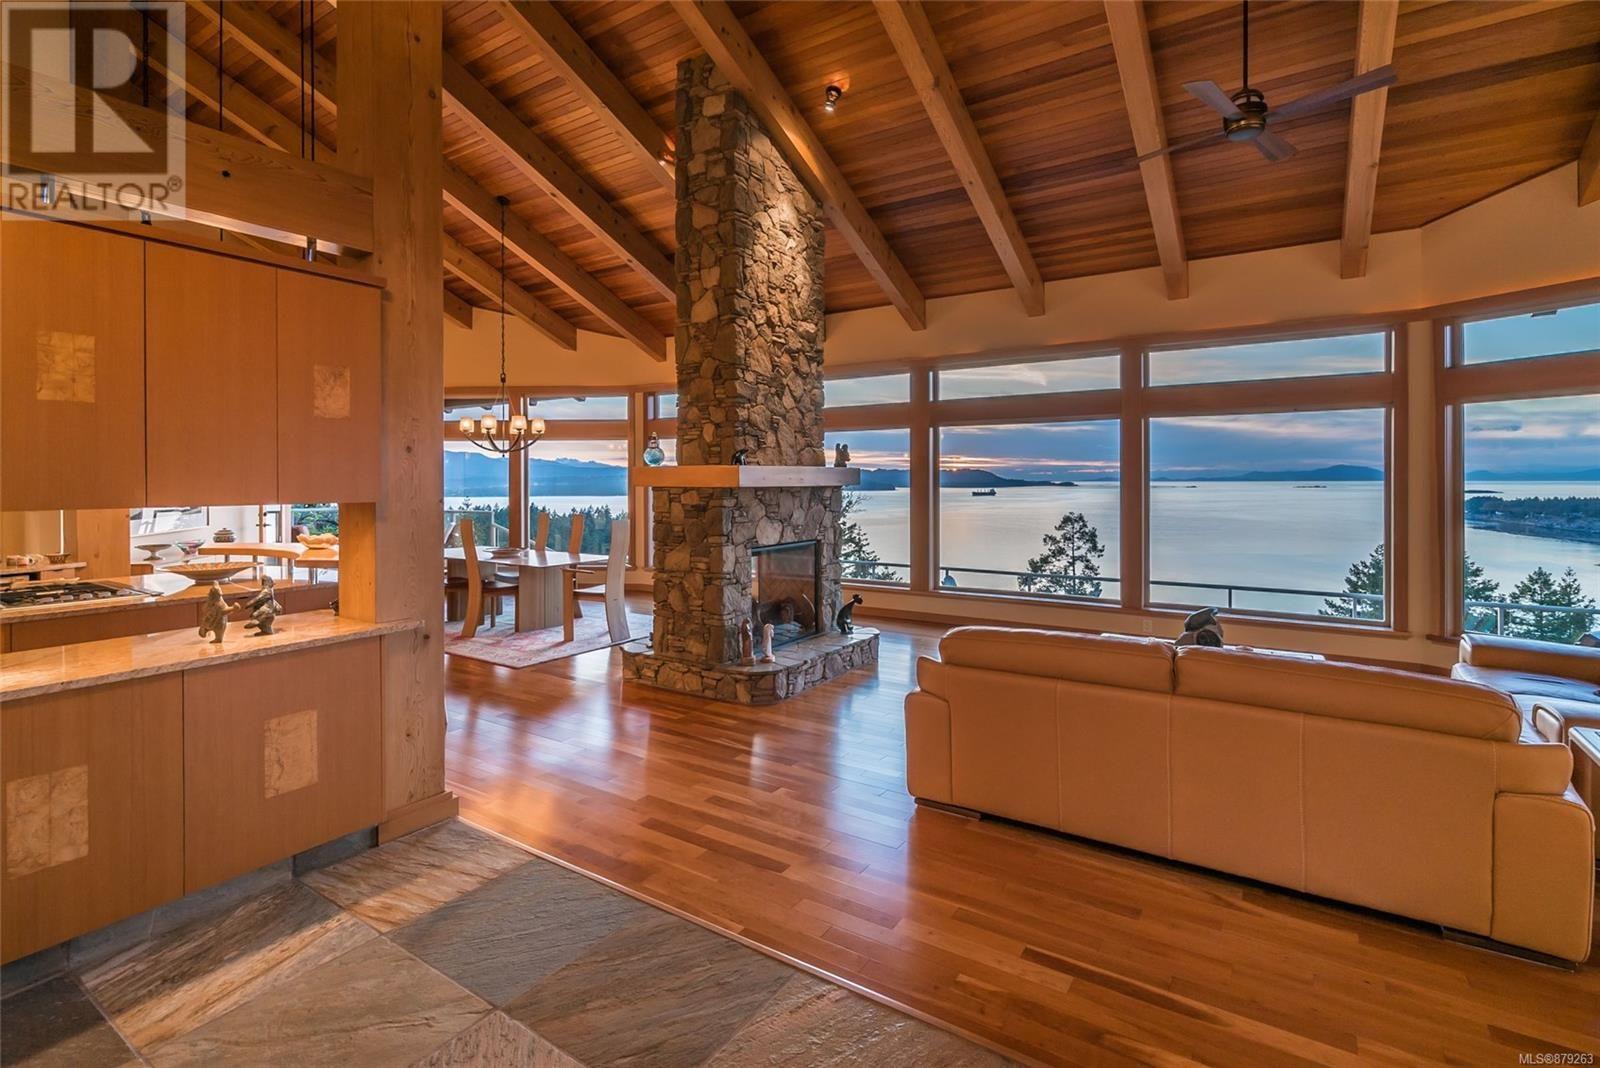 Photo 8: Photos: 825 Duthie Ave in Gabriola Island: House for sale : MLS®# 879263